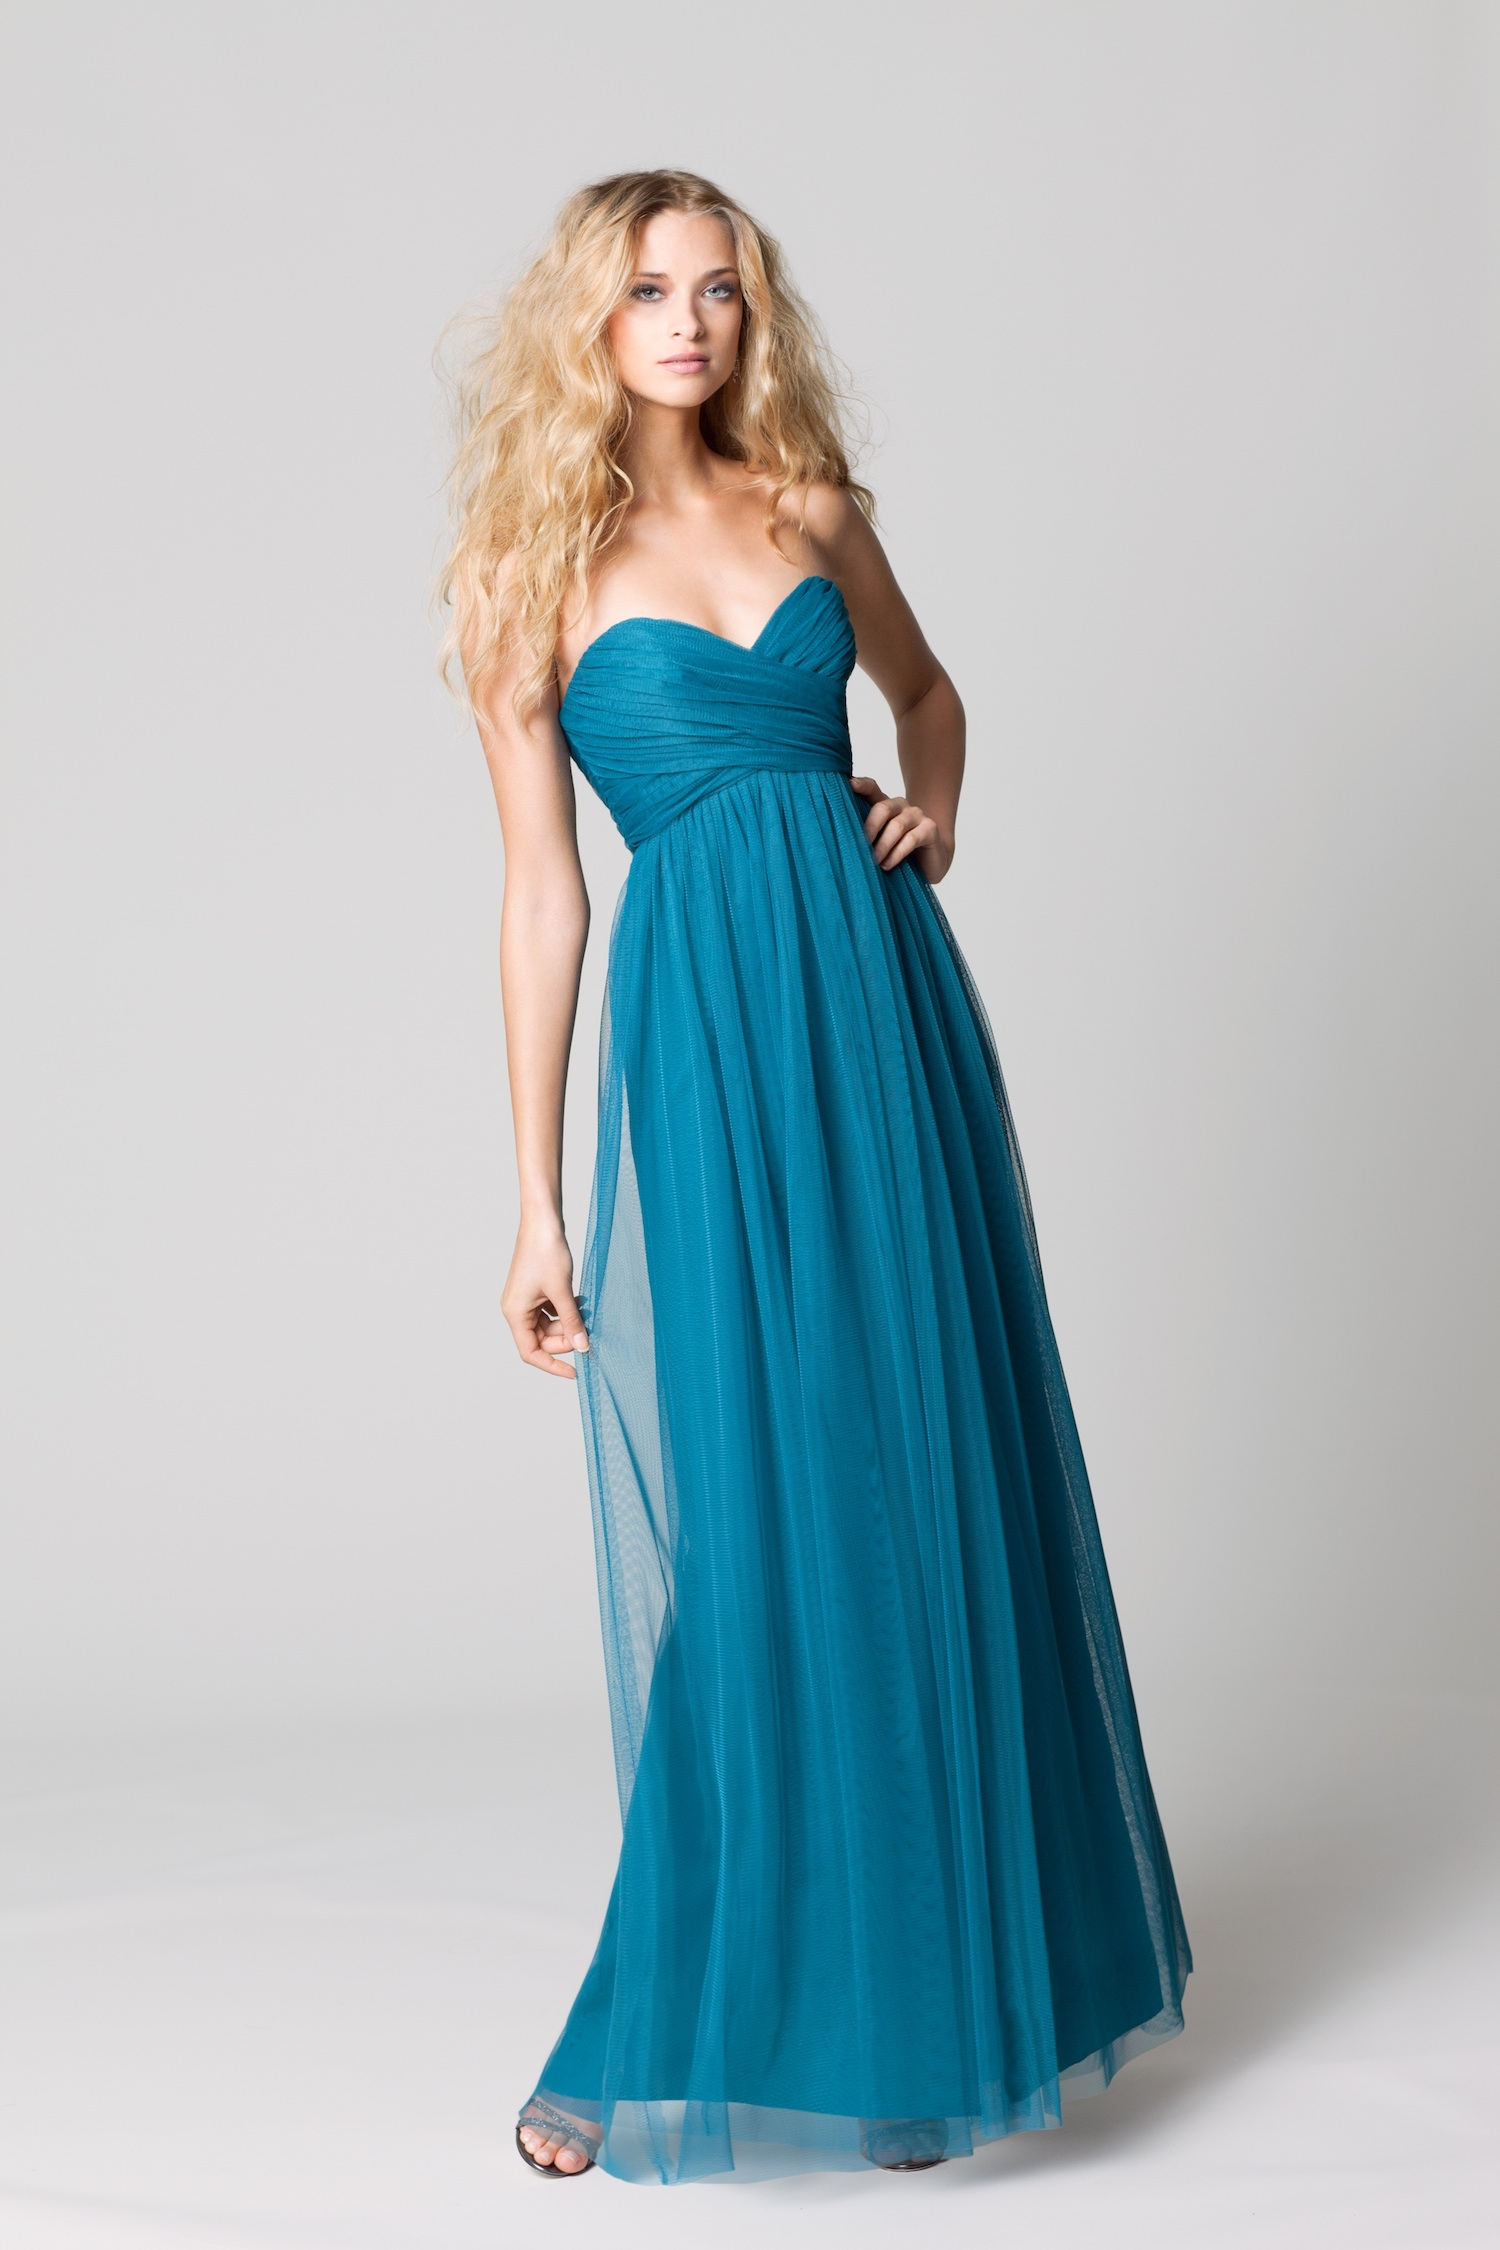 Affordable bridesmaids dresses fall 2012 wtoo by watters for Long dresses for wedding party